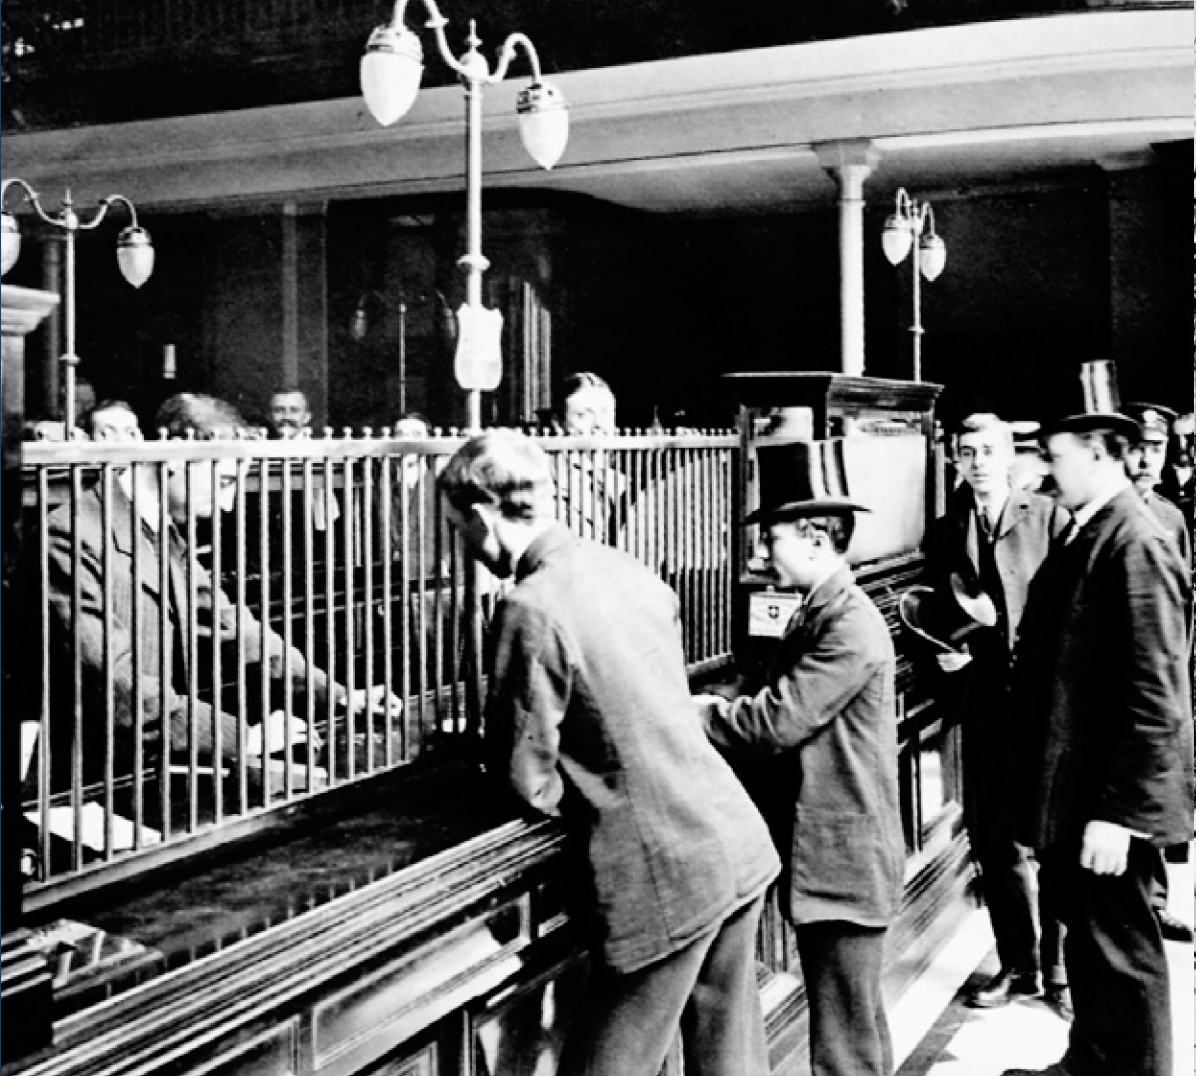 At a bank counter, customers dressed in suits do business. Iron bars separate the customers from the bank tellers.